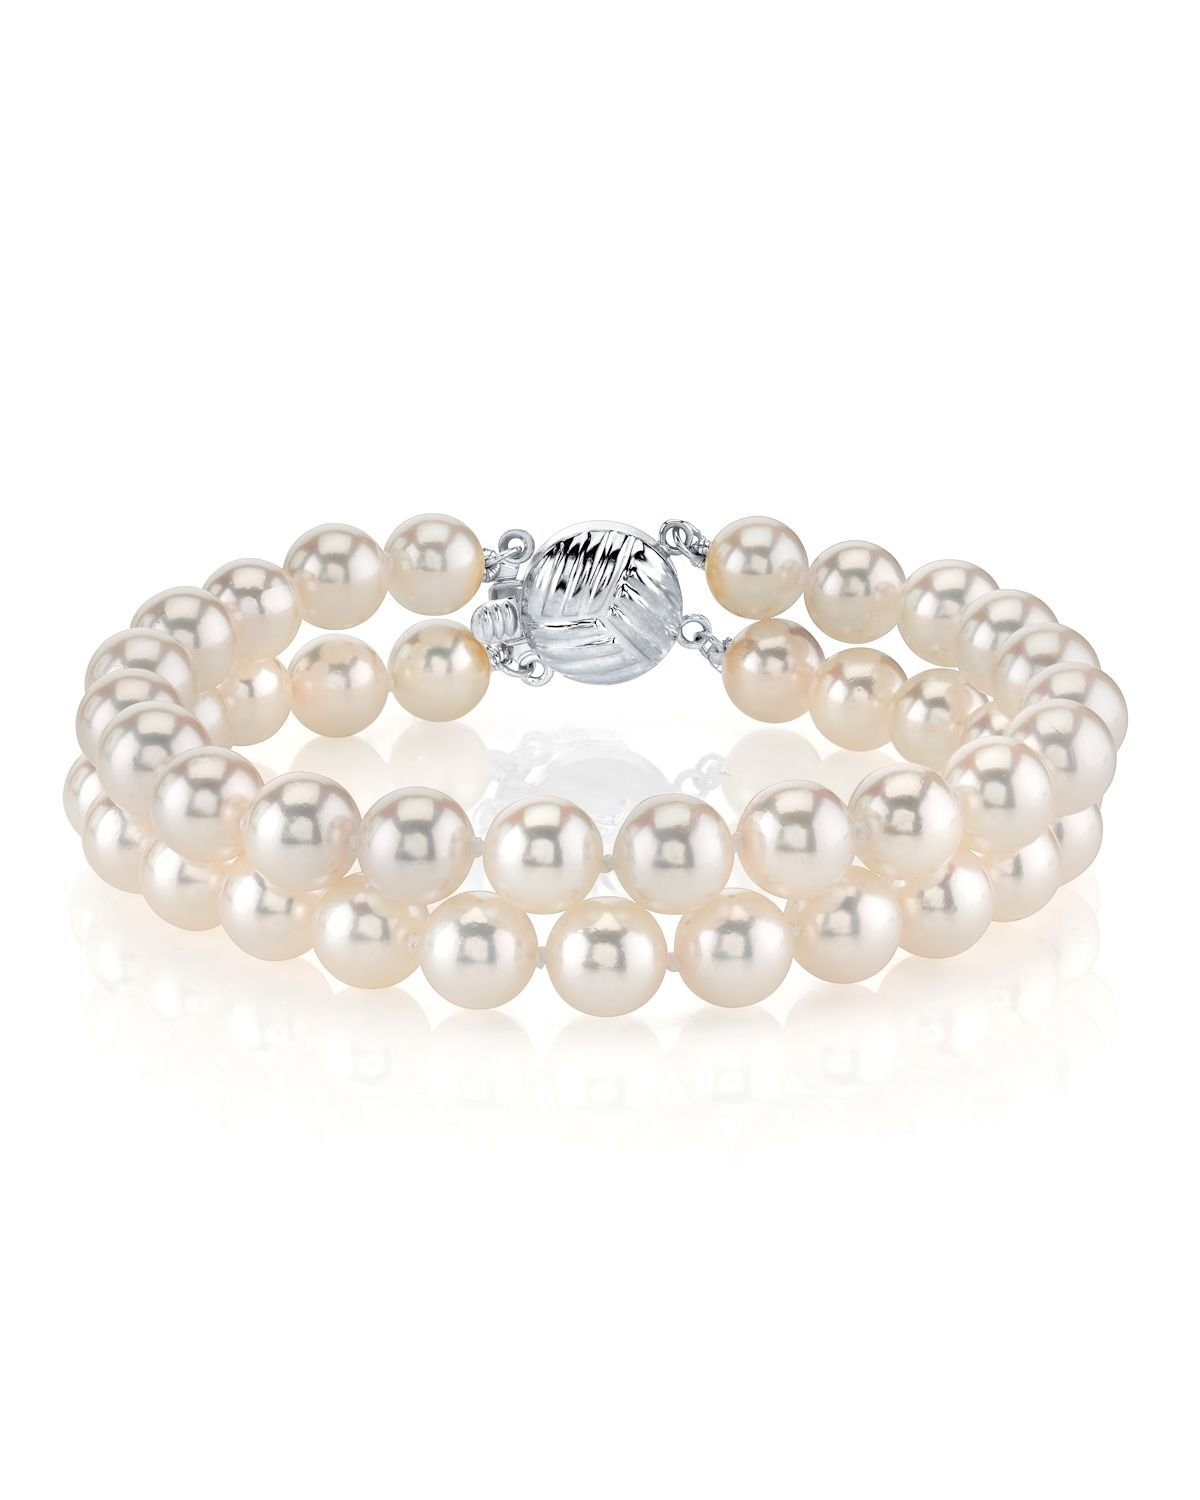 14K Gold 6.0-6.5mm Double Japanese Akoya Saltwater White Cultured Pearl Bracelet - AAA Quality